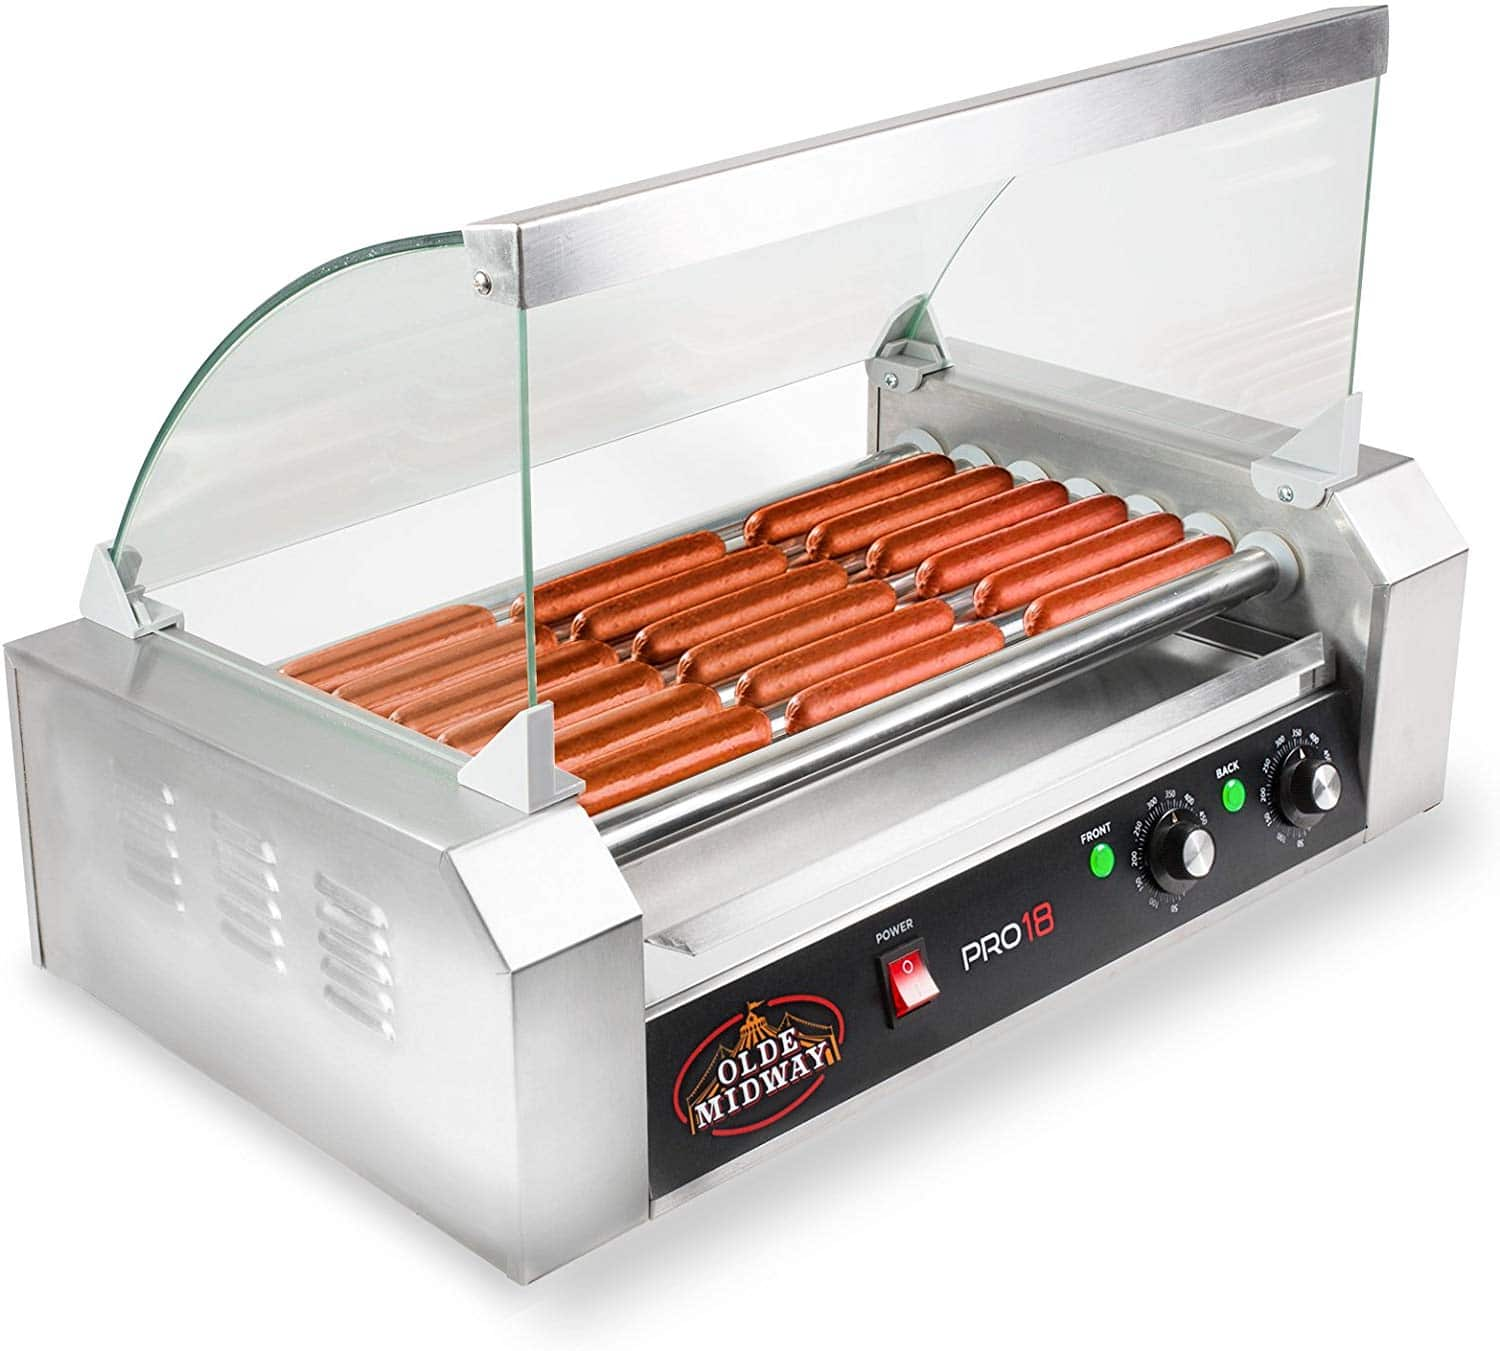 Olde Midway ROLL-PRO18-CVR Grill Cooker Machine